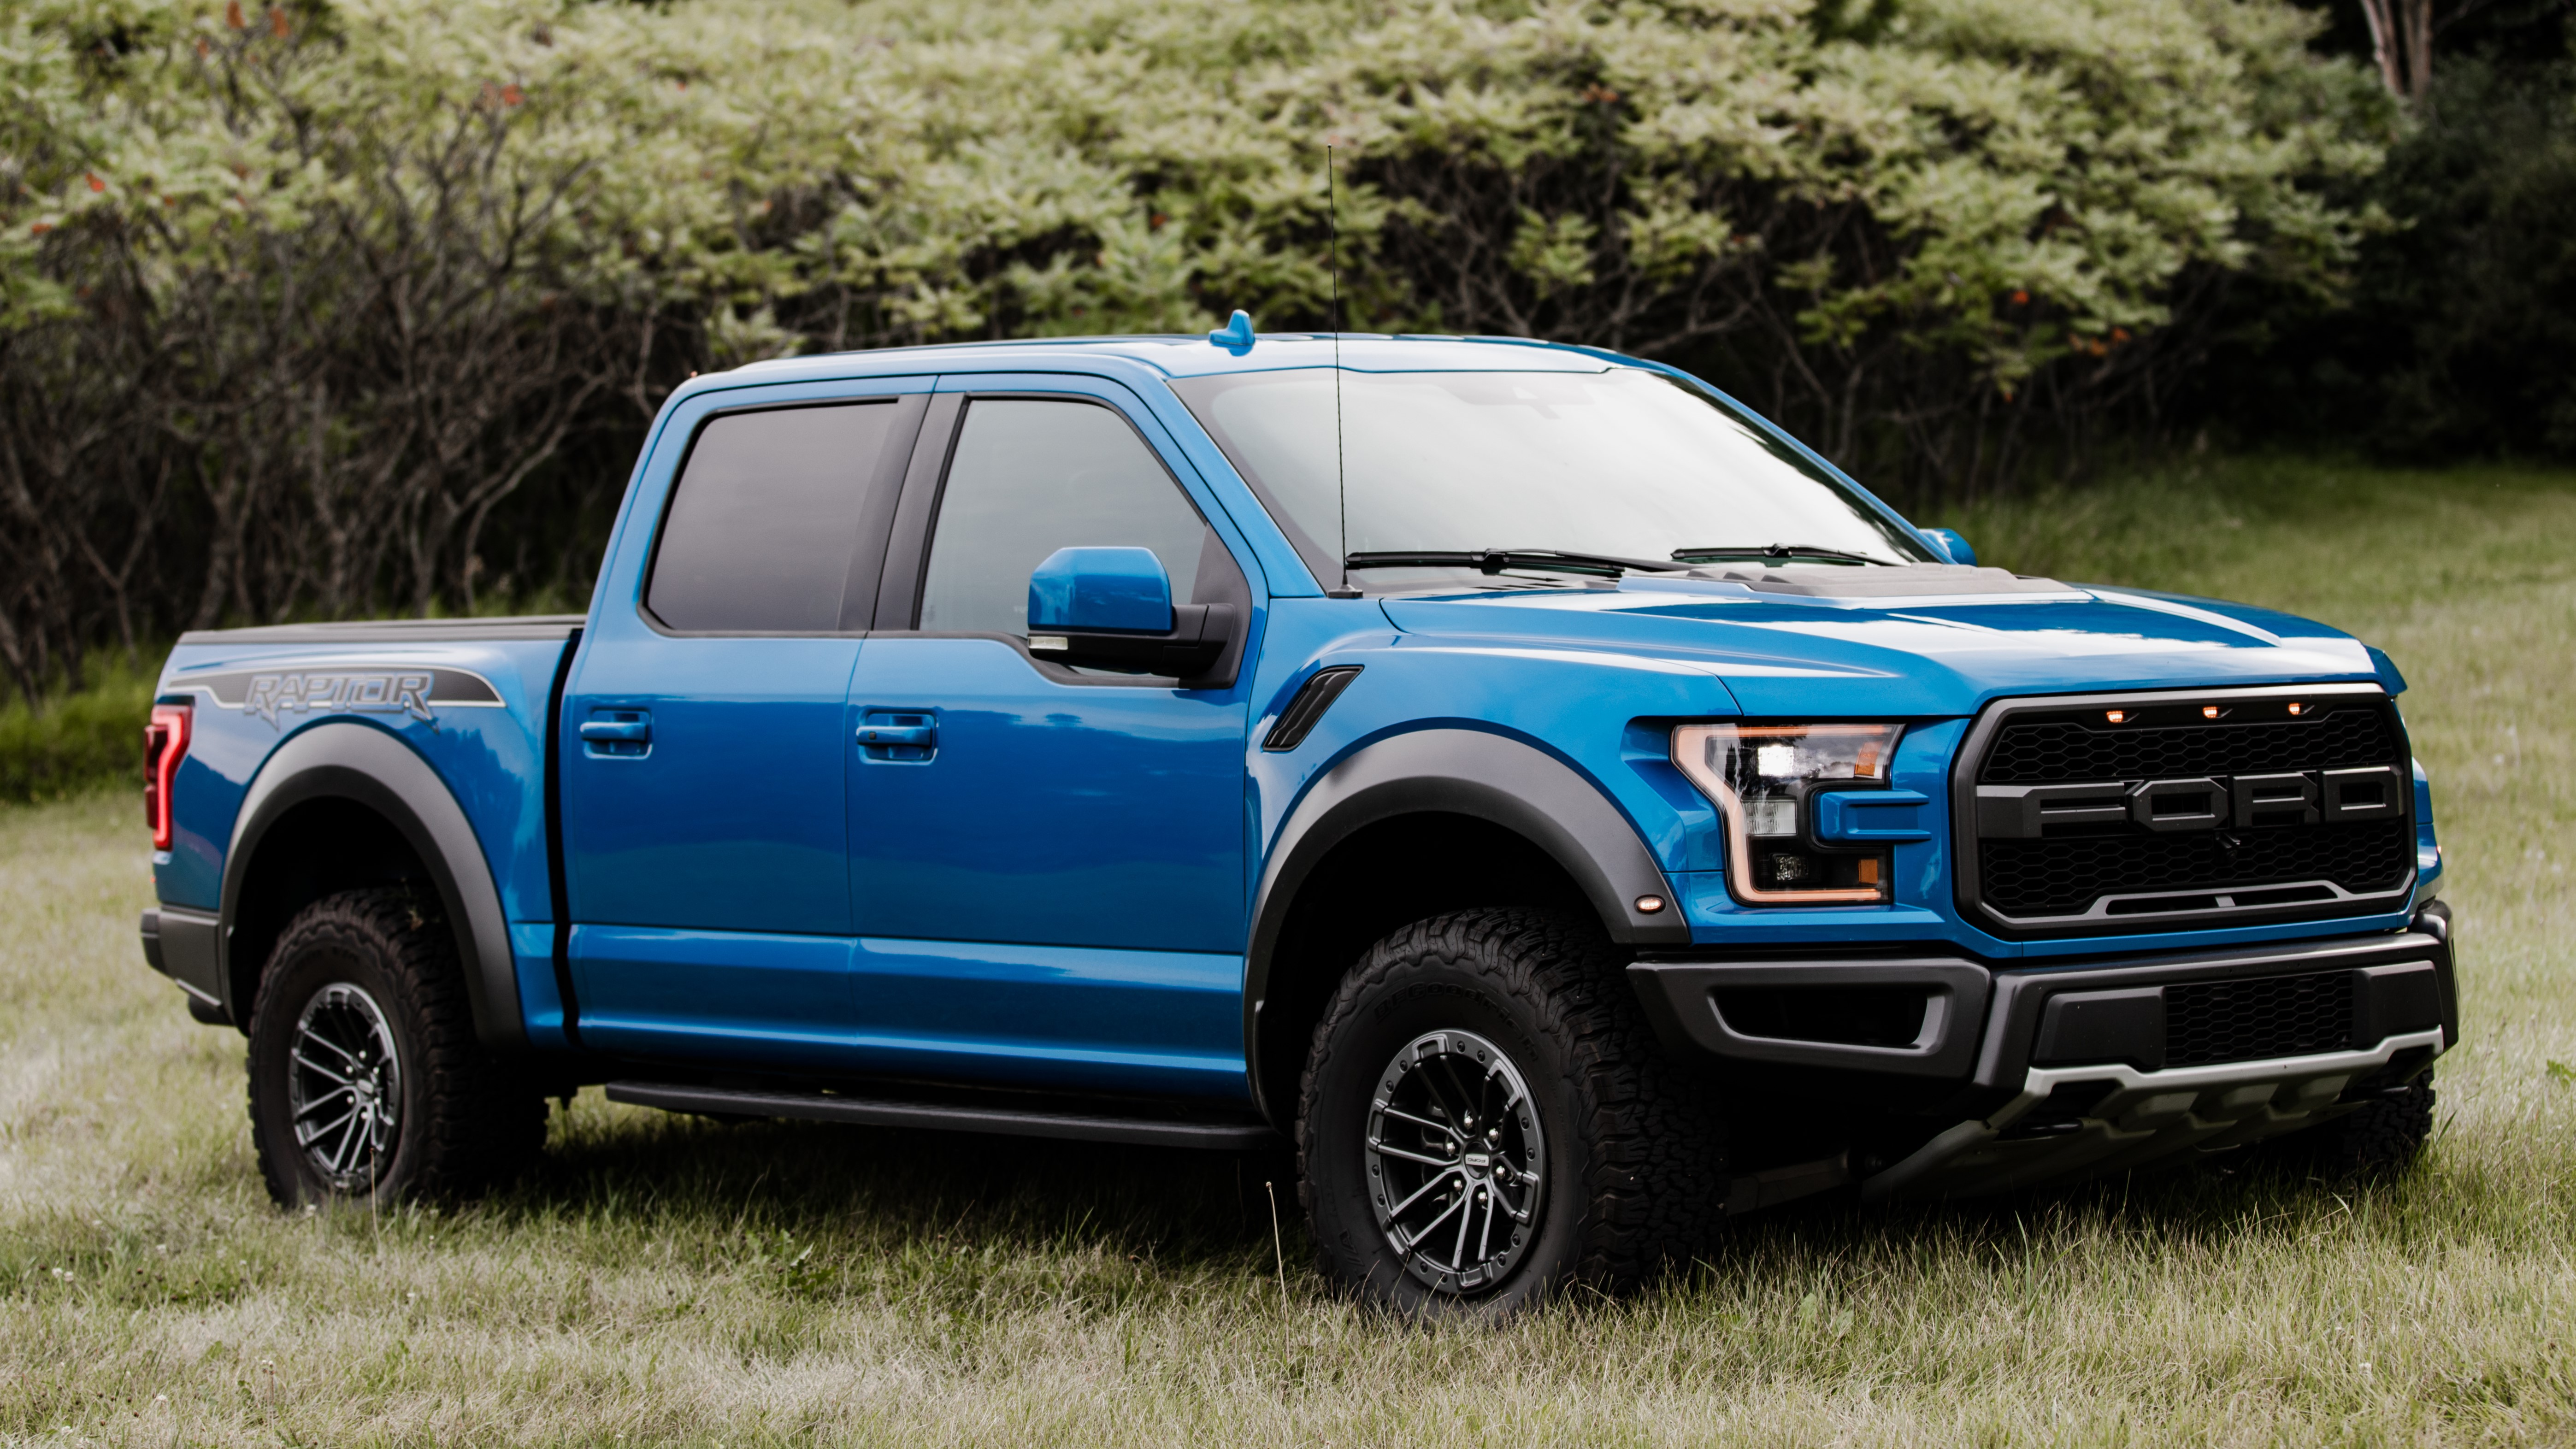 The brilliant trailering tech in the 2019 Ford Raptor